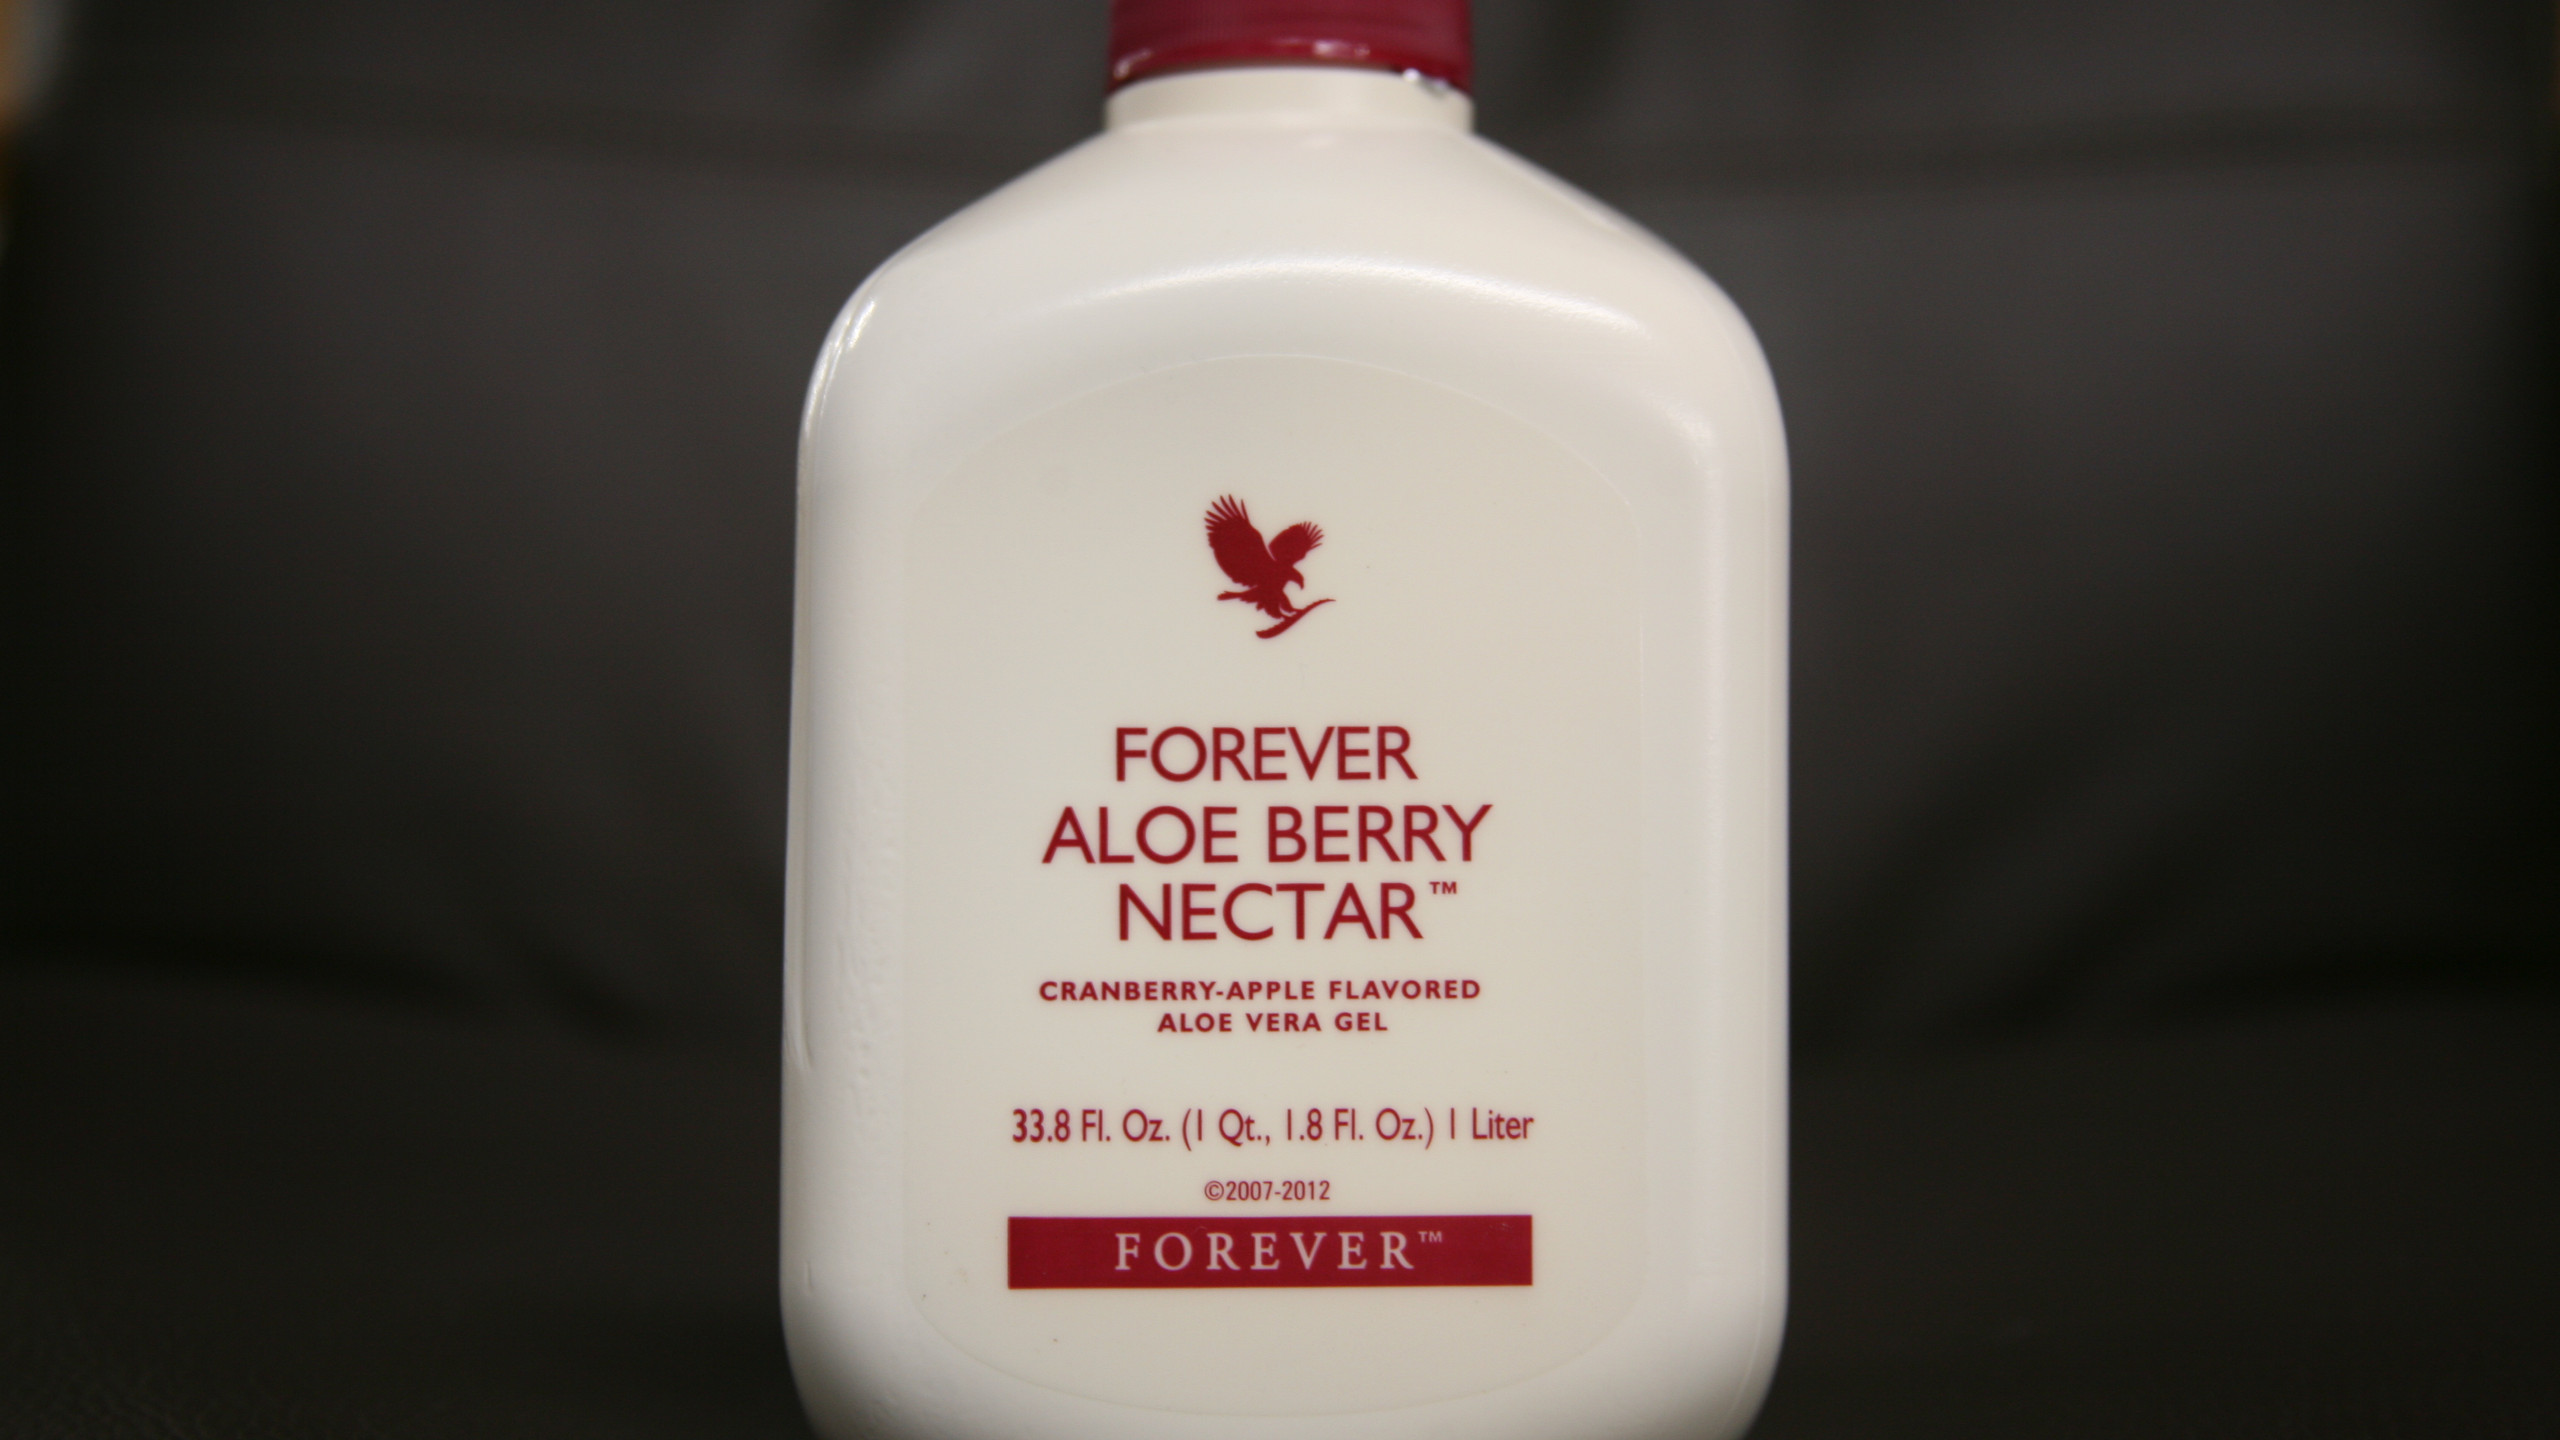 Aloe Vera products the Forever Range